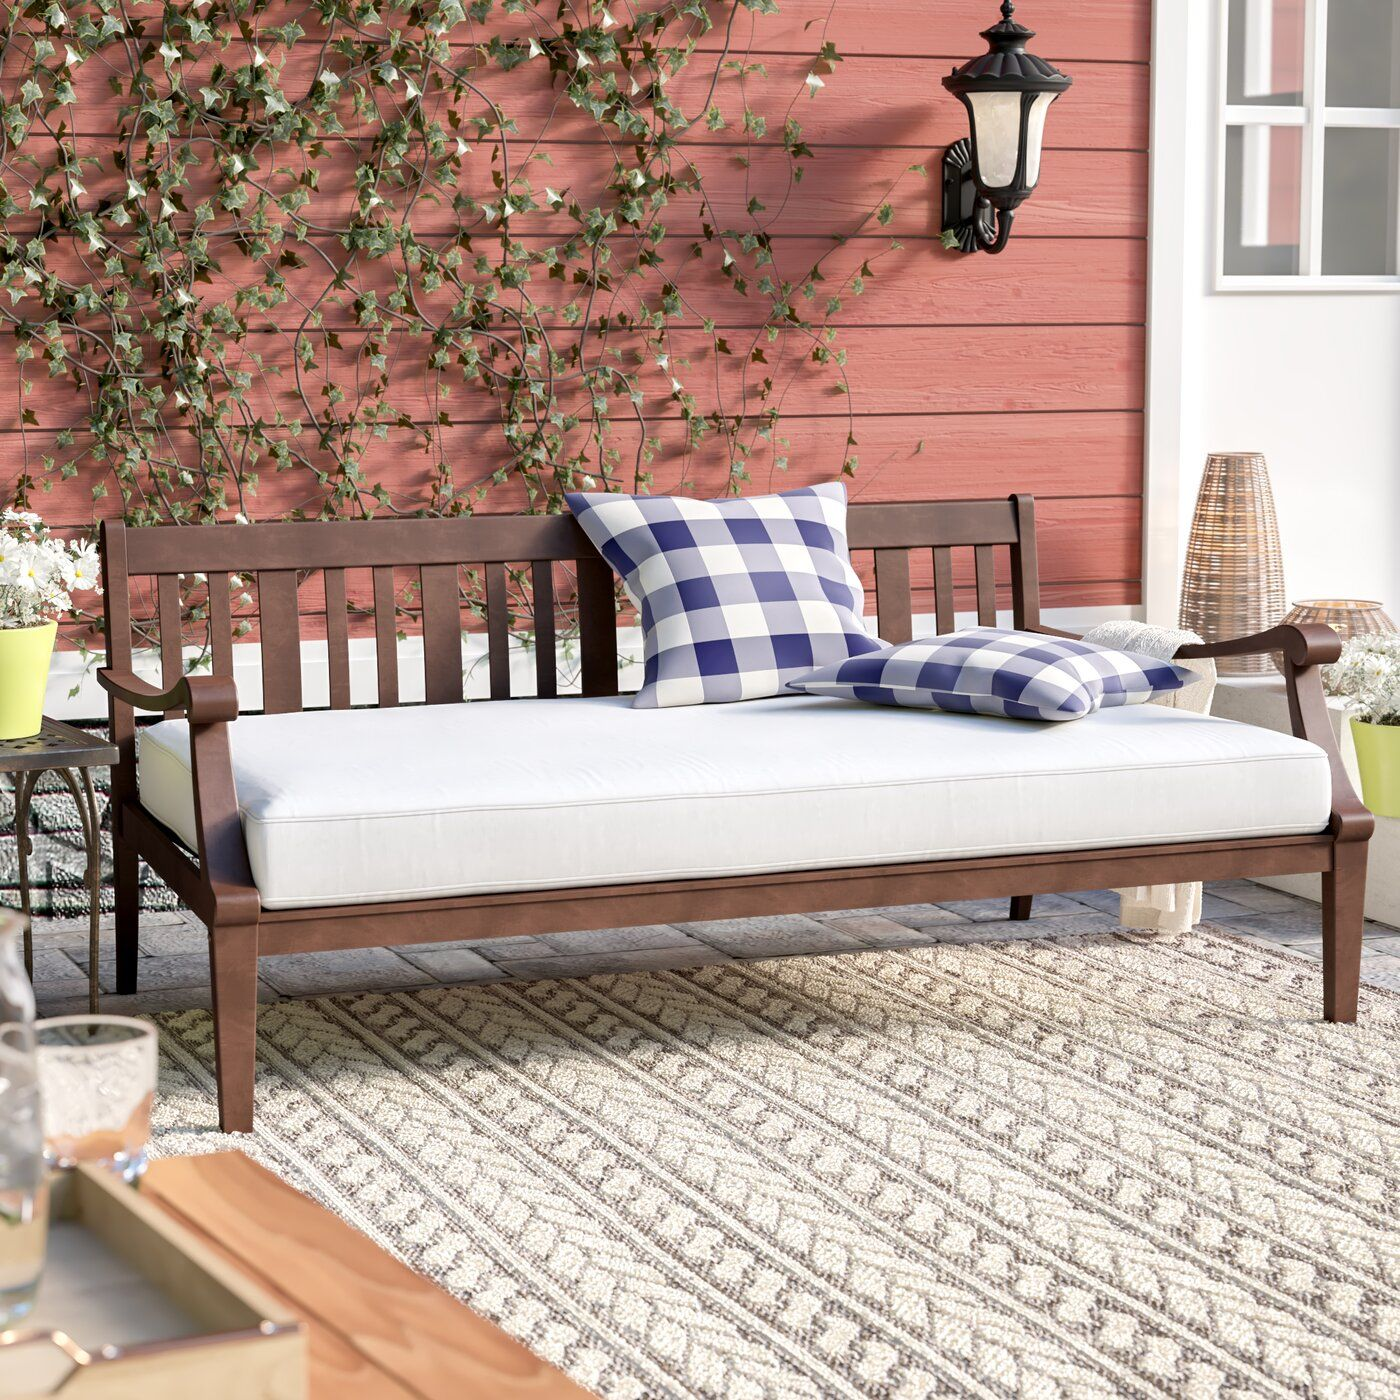 Dowling Patio Daybed with Cushion | Patio daybed, Outdoor ... on Living Spaces Outdoor Daybed id=96713